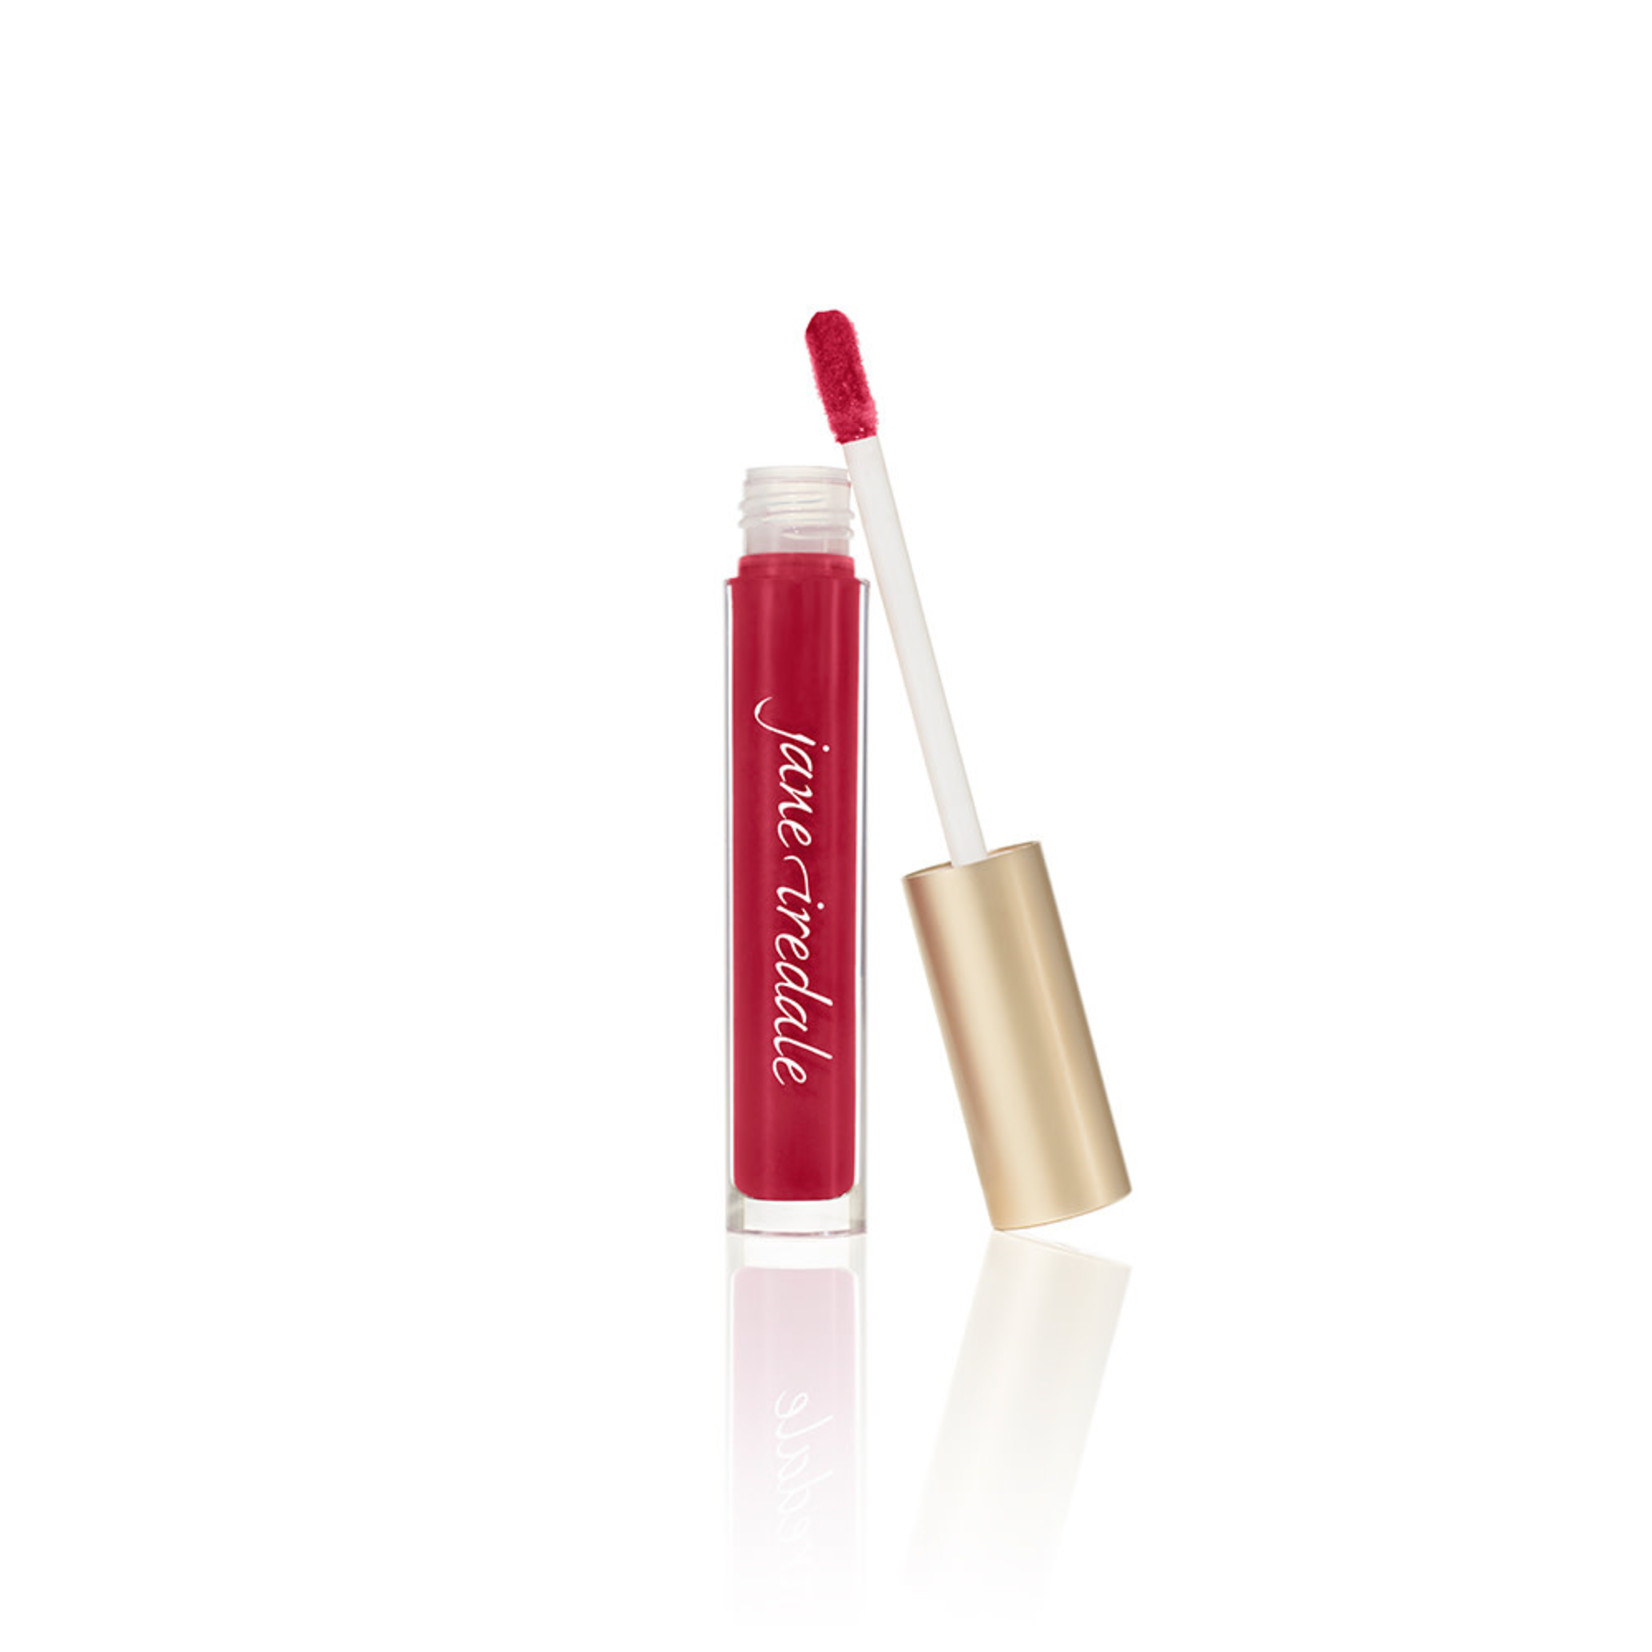 jane iredale Hyaluronic lip gloss - berry red